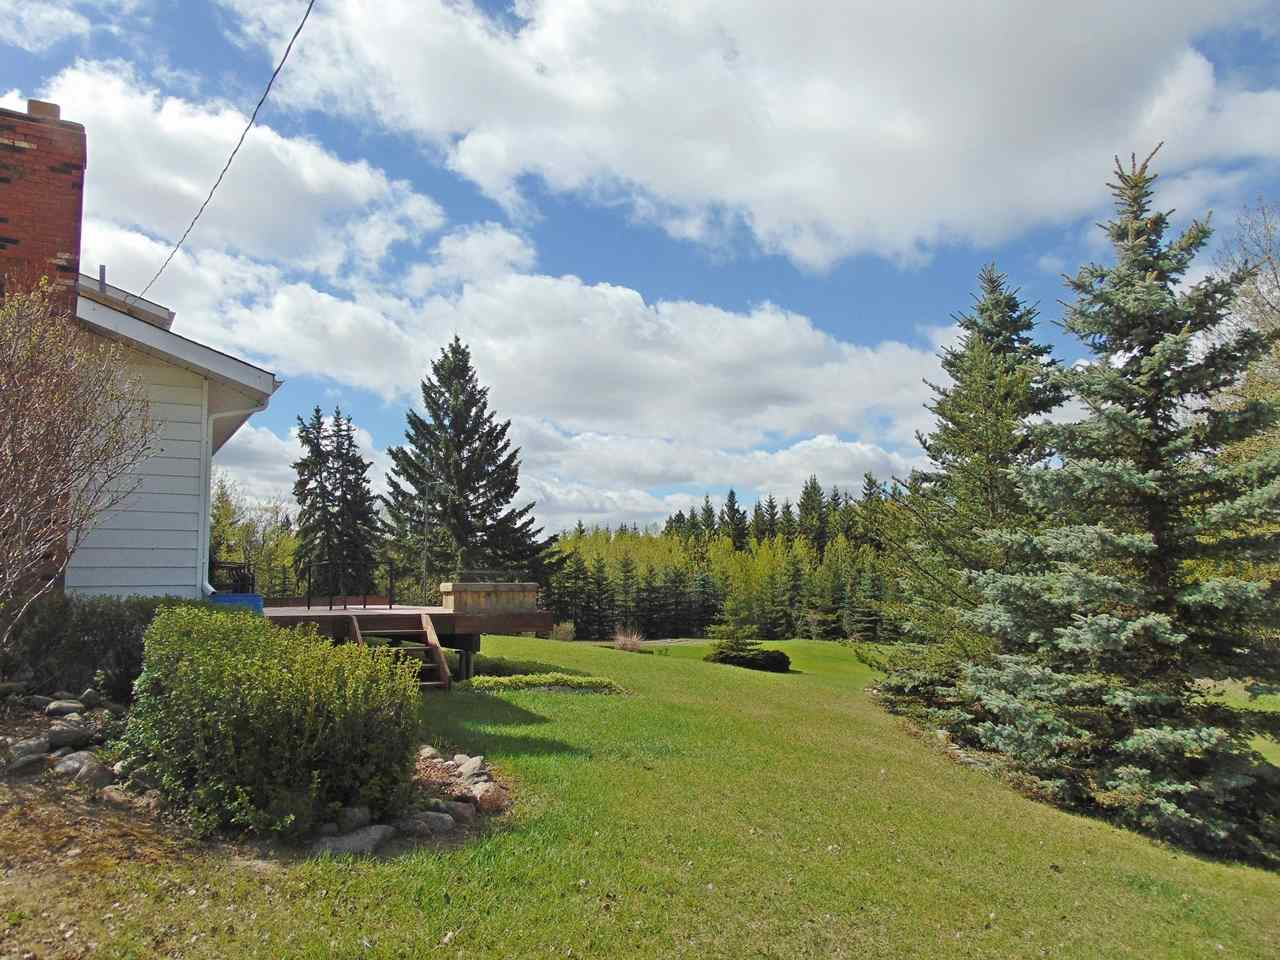 Photo 28: 57130 Rg Rd 230: Rural Sturgeon County House for sale : MLS(r) # E4064722